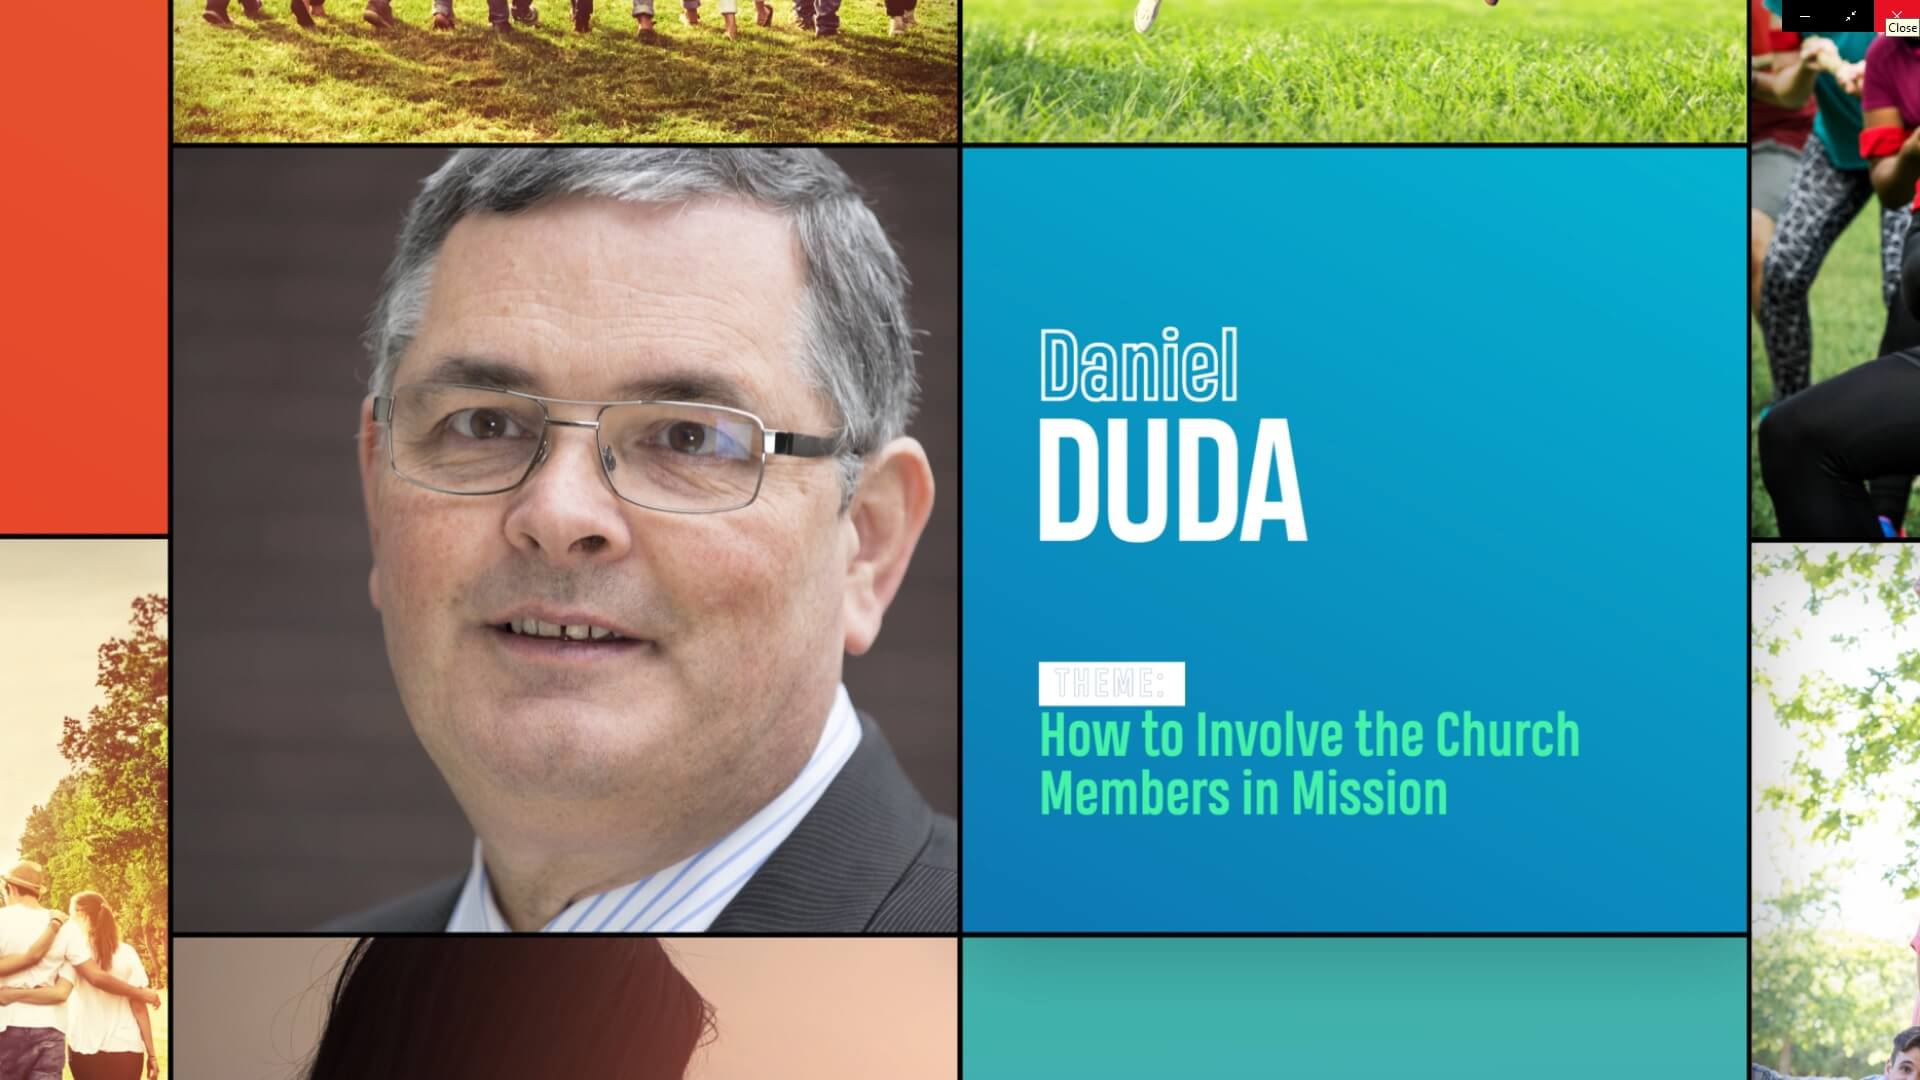 D.Duda How to involve church members into mission